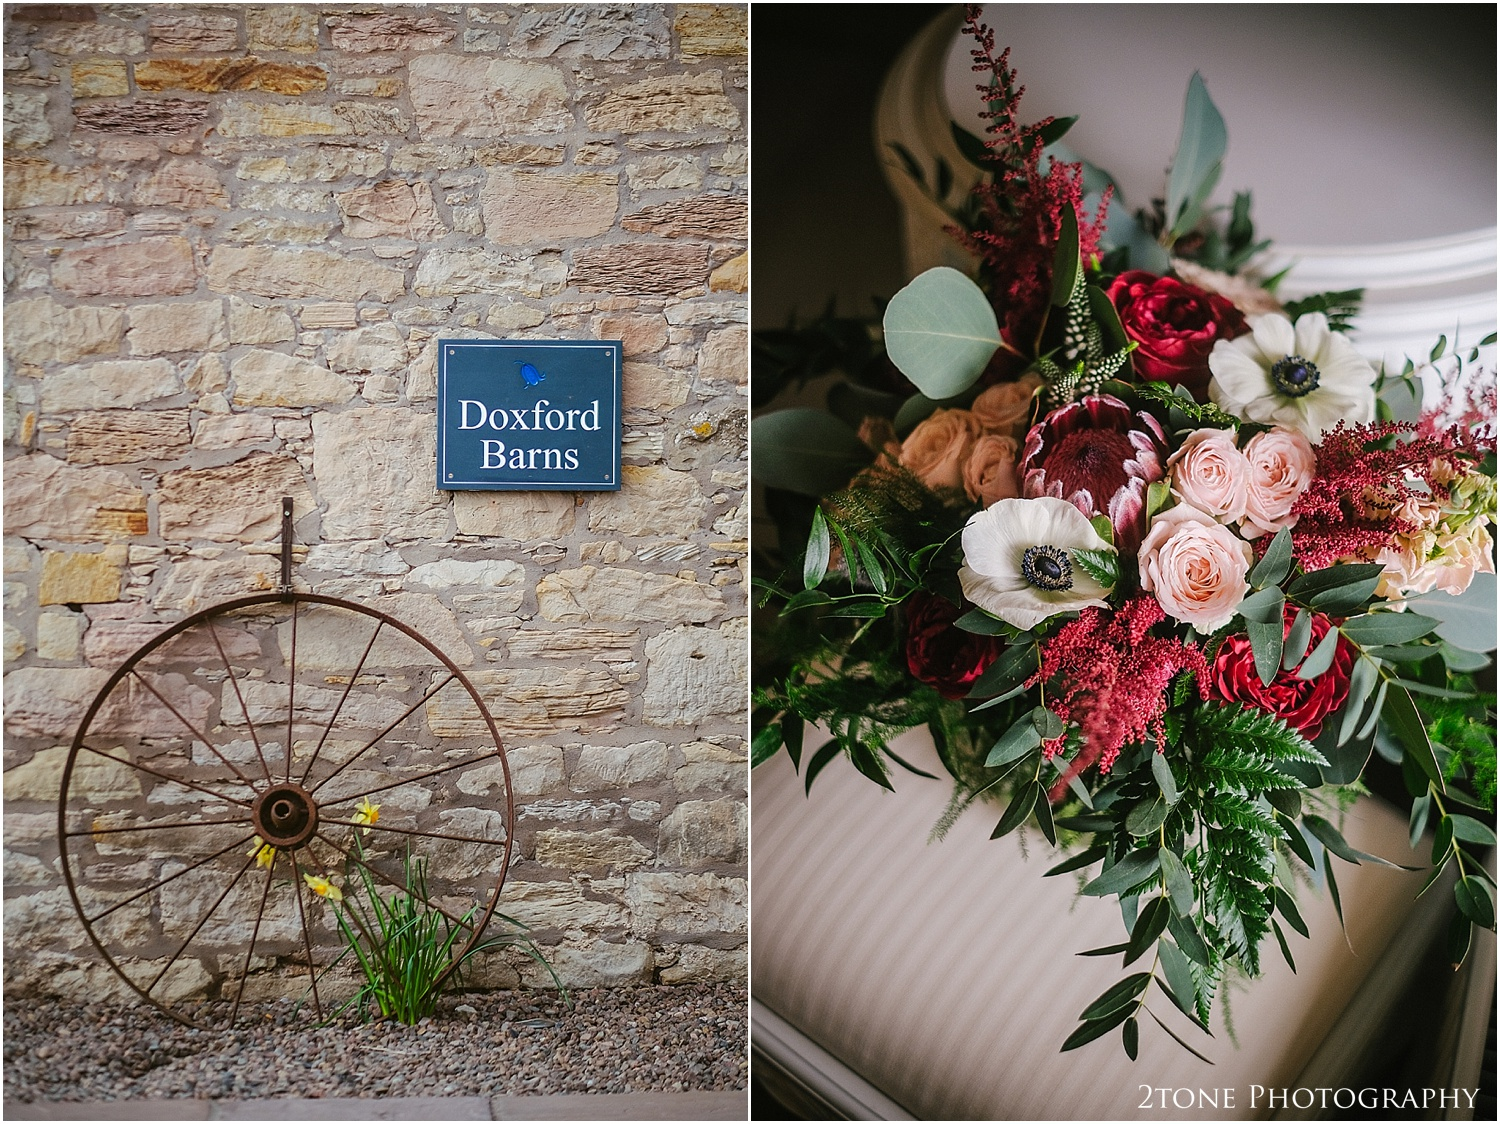 Doxford Barns wedding photos 003.jpg